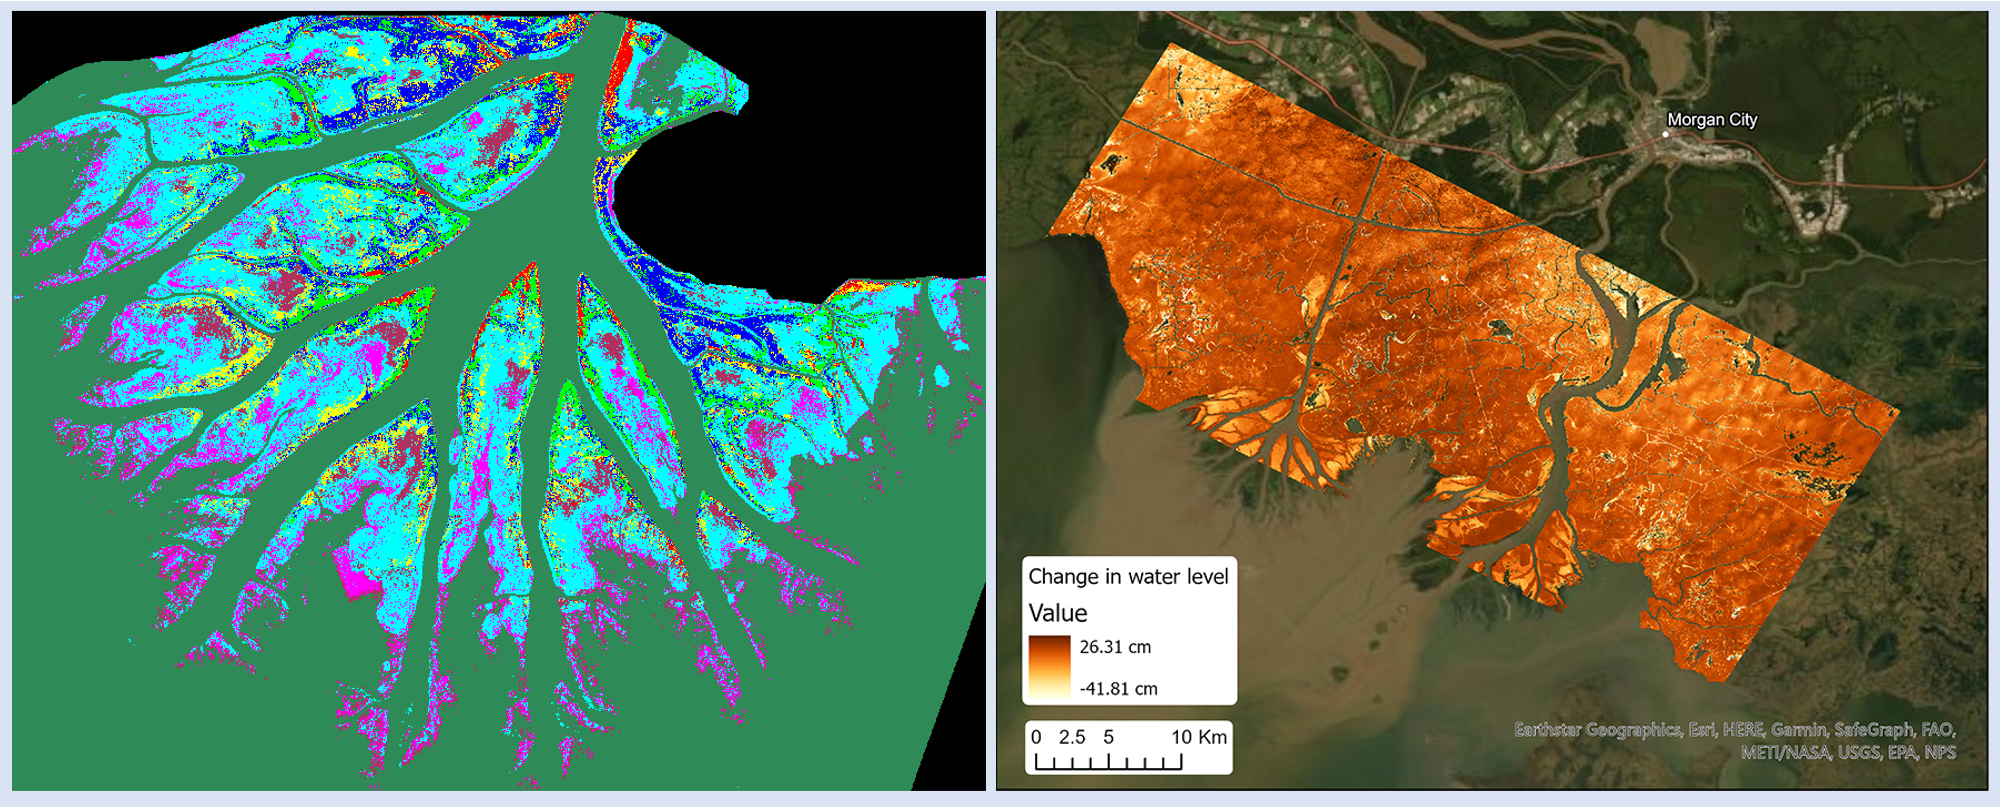 Side-by-side maps. Left: Delta colored in to indicate vegetation types. Right: Changes in water level indicated in shades of yellow, orange, and red, with darker colors indicating greater water change.